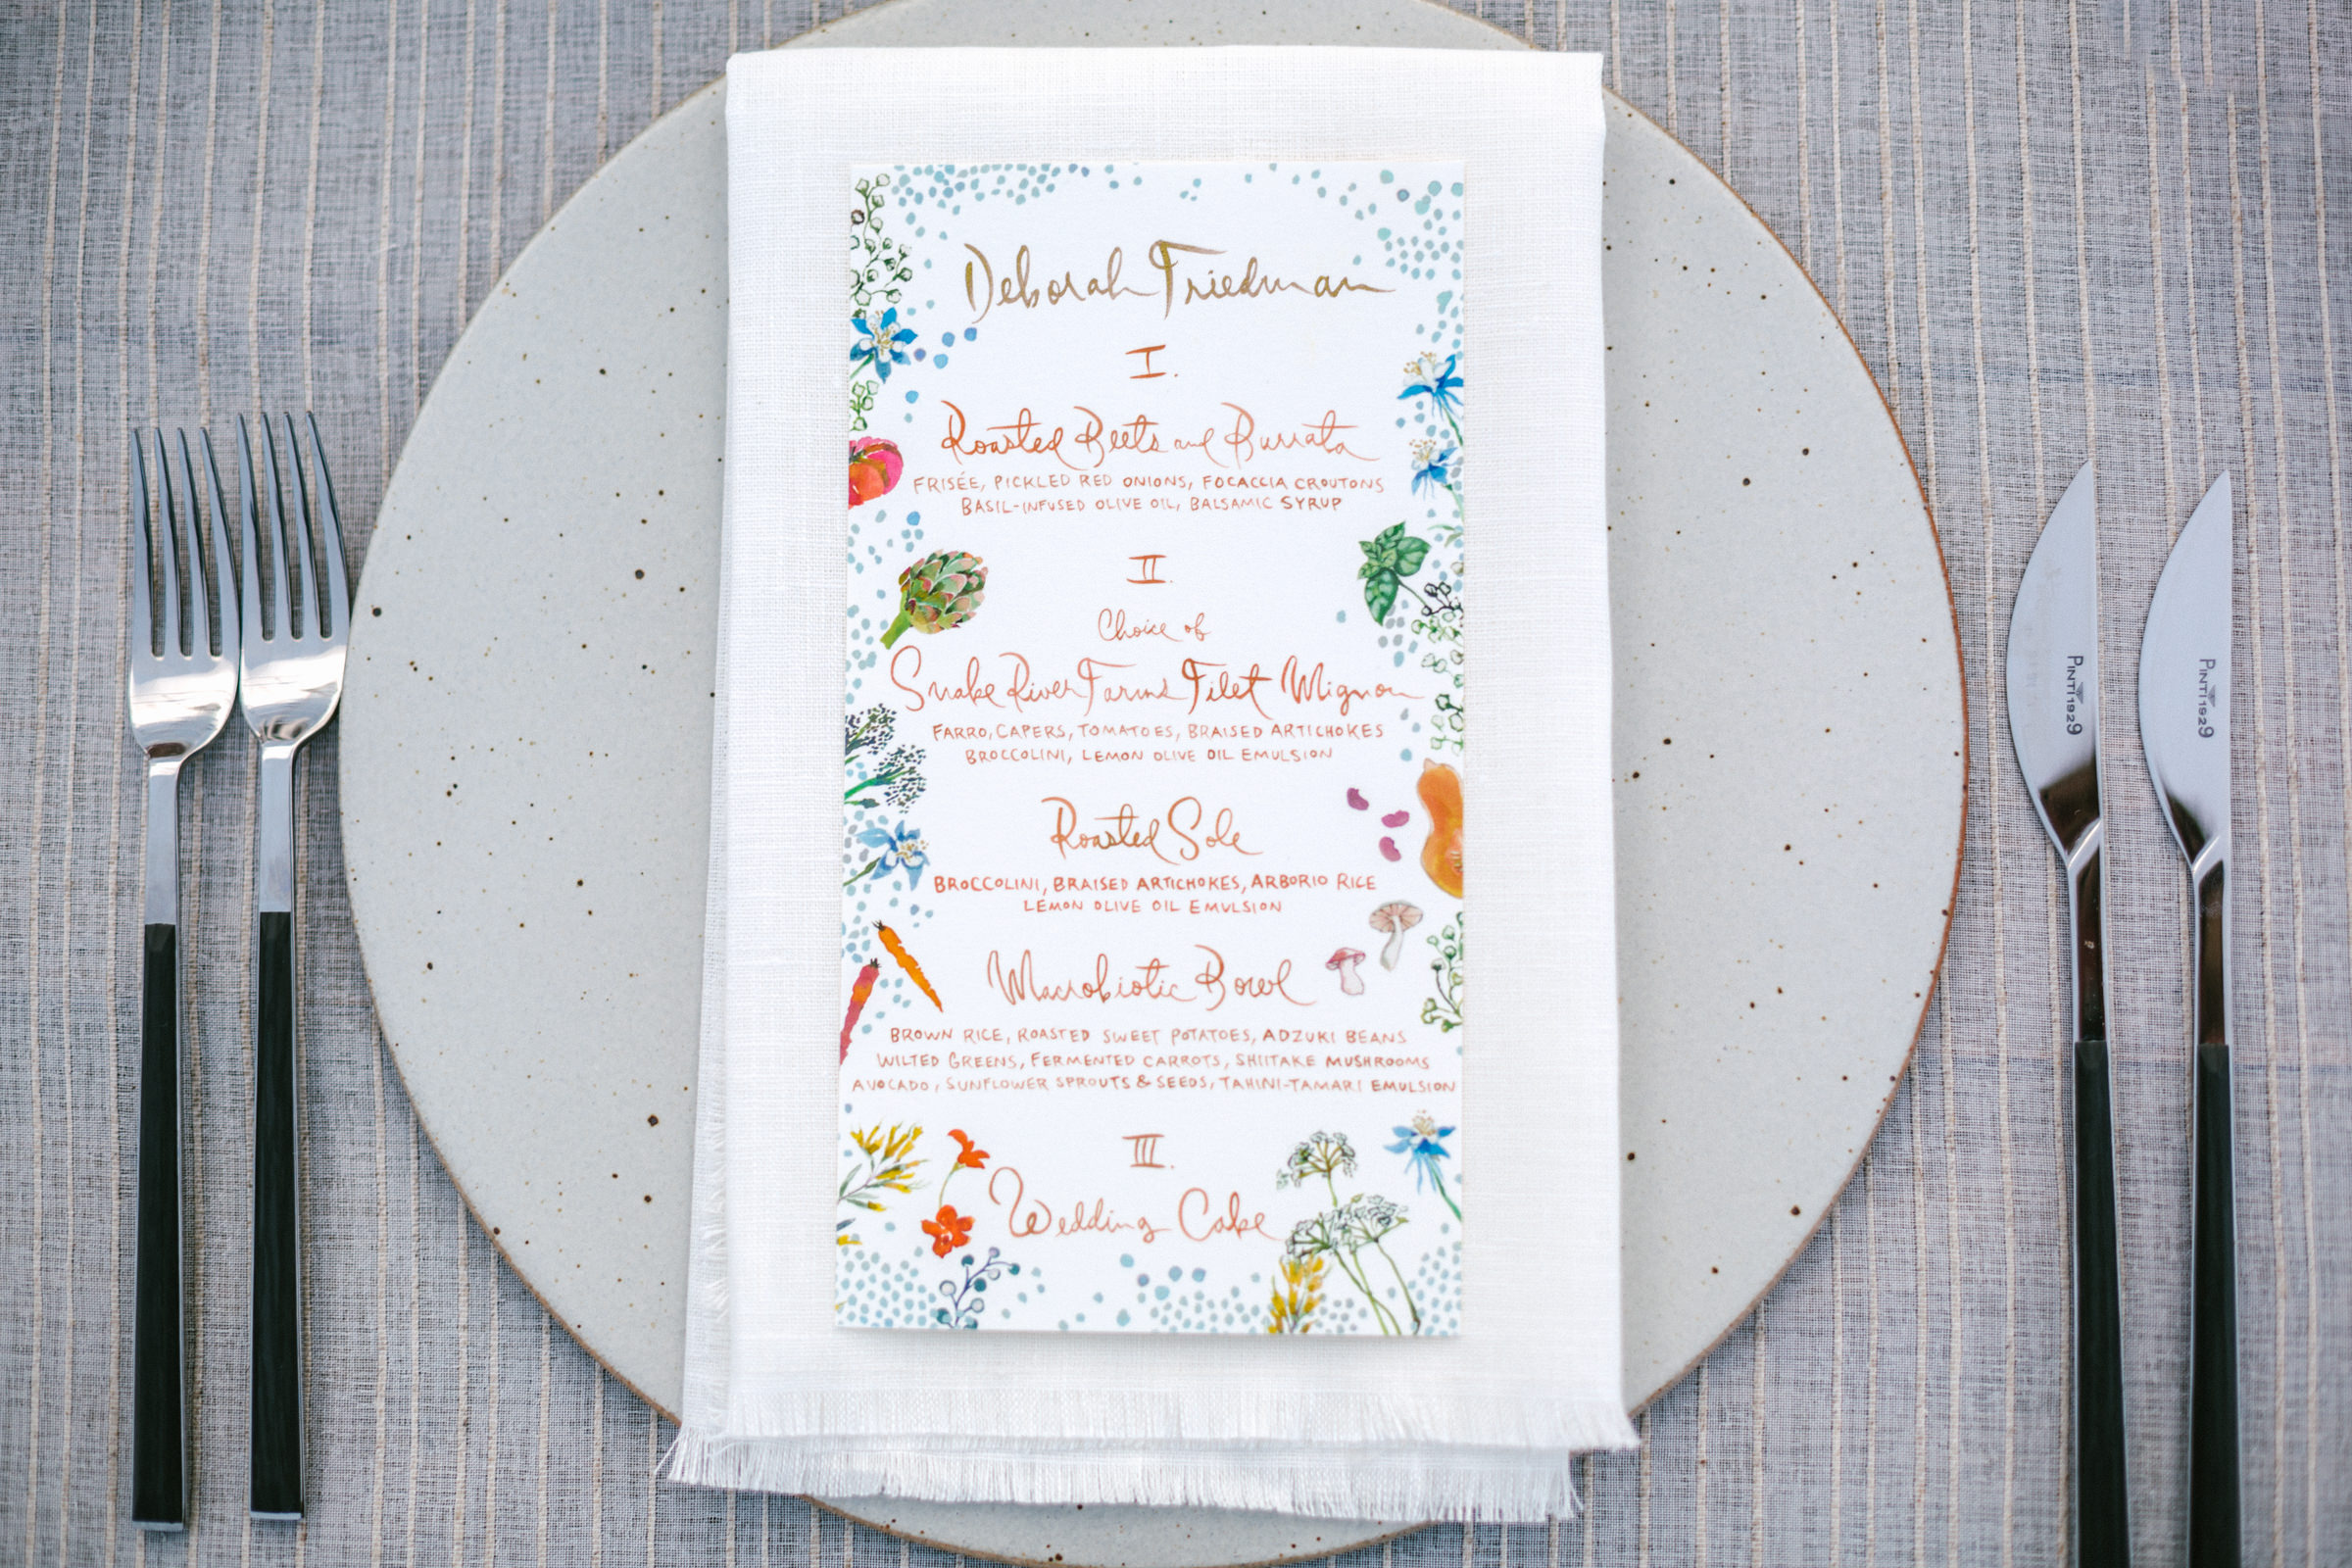 Menu with drawings - photo by Amy and Stuart Photography